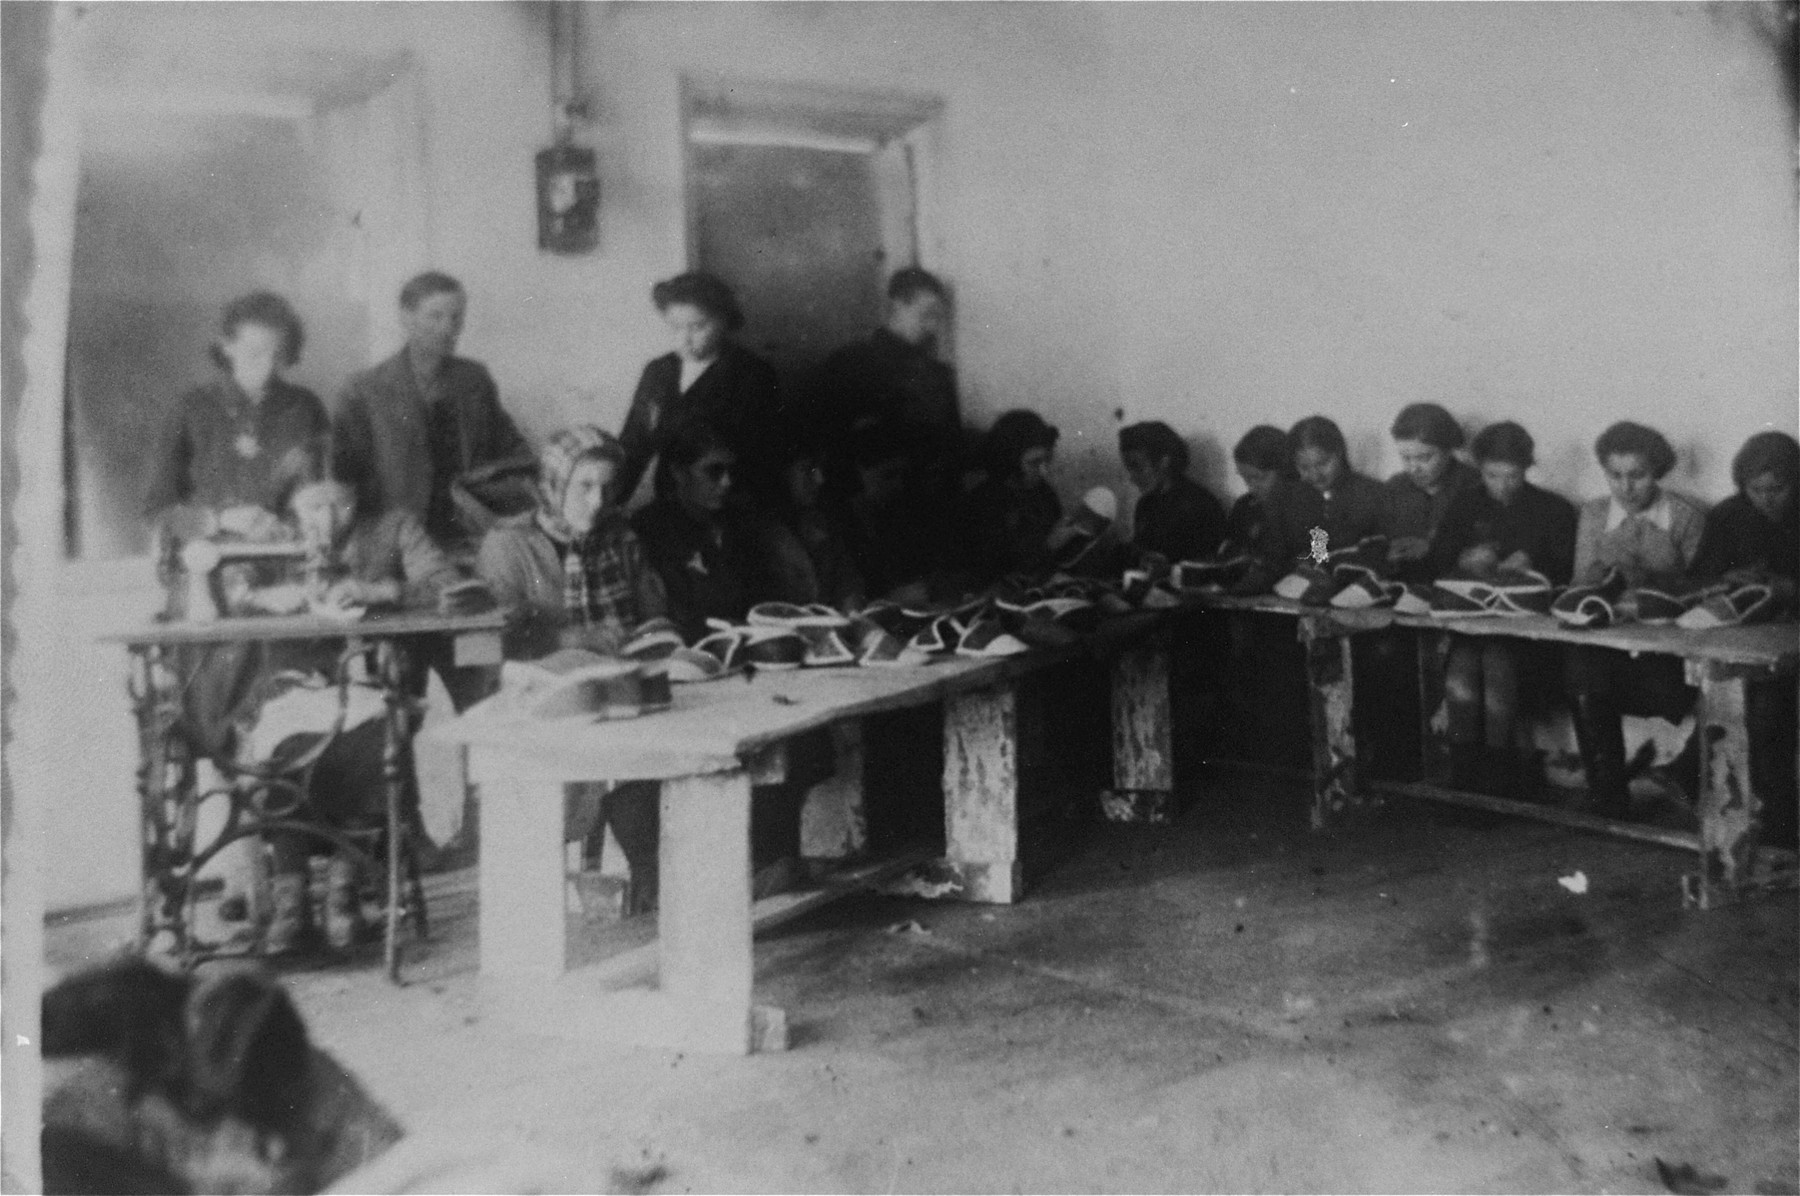 Jewish women at work producing house shoes in the Glubokoye ghetto.